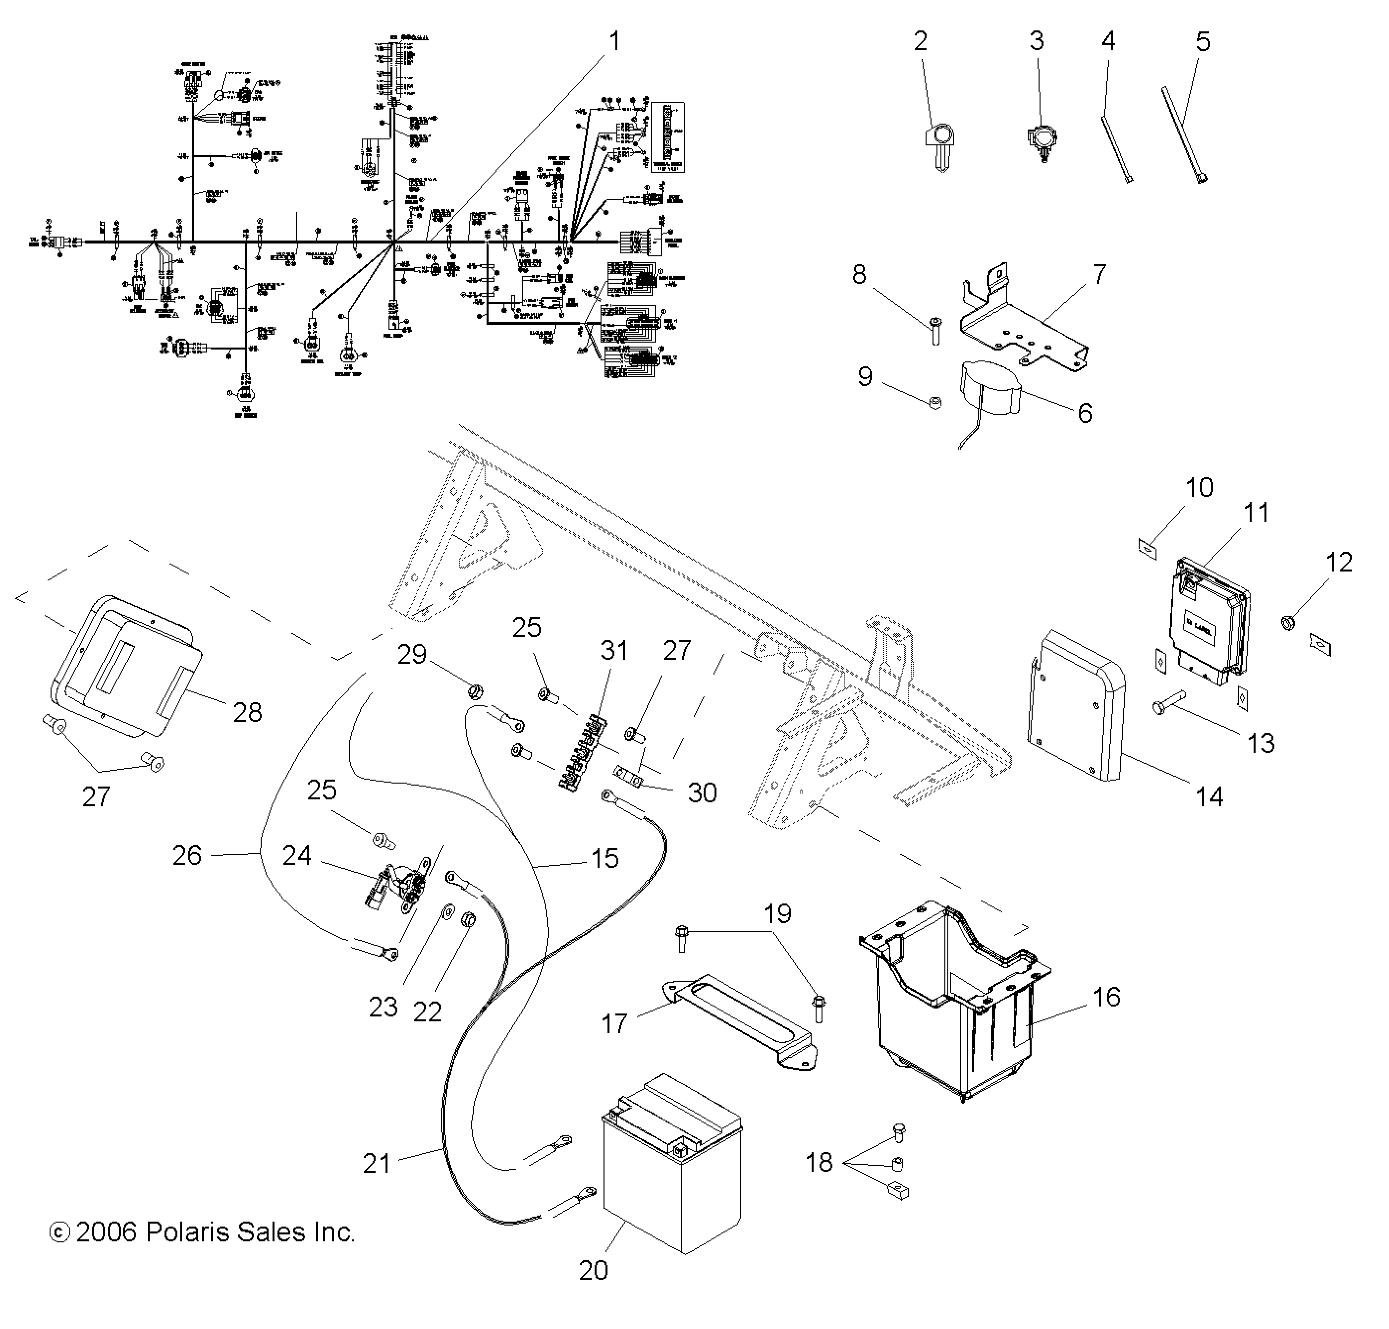 2011 Ranger Crew 500 Wiring Diagram Wiring Diagram Resource Resource Led Illumina It